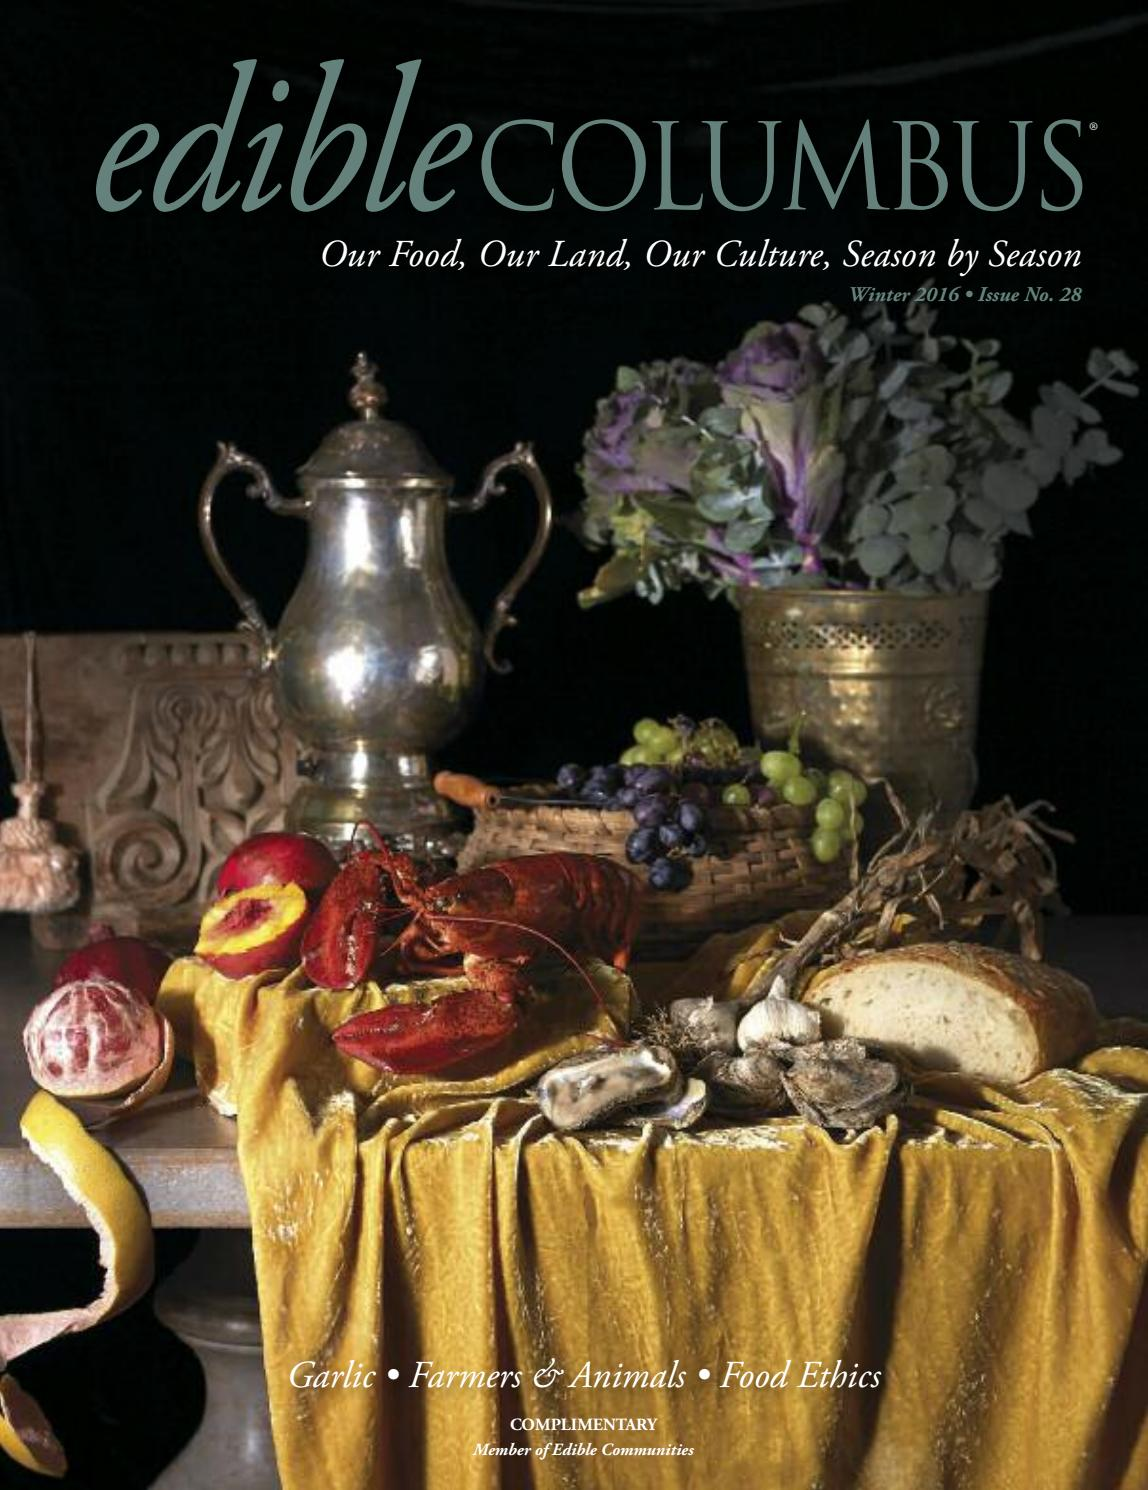 edible COLUMBUS | WINTER 2016 | Issue No. 28 by Edible Columbus - issuu